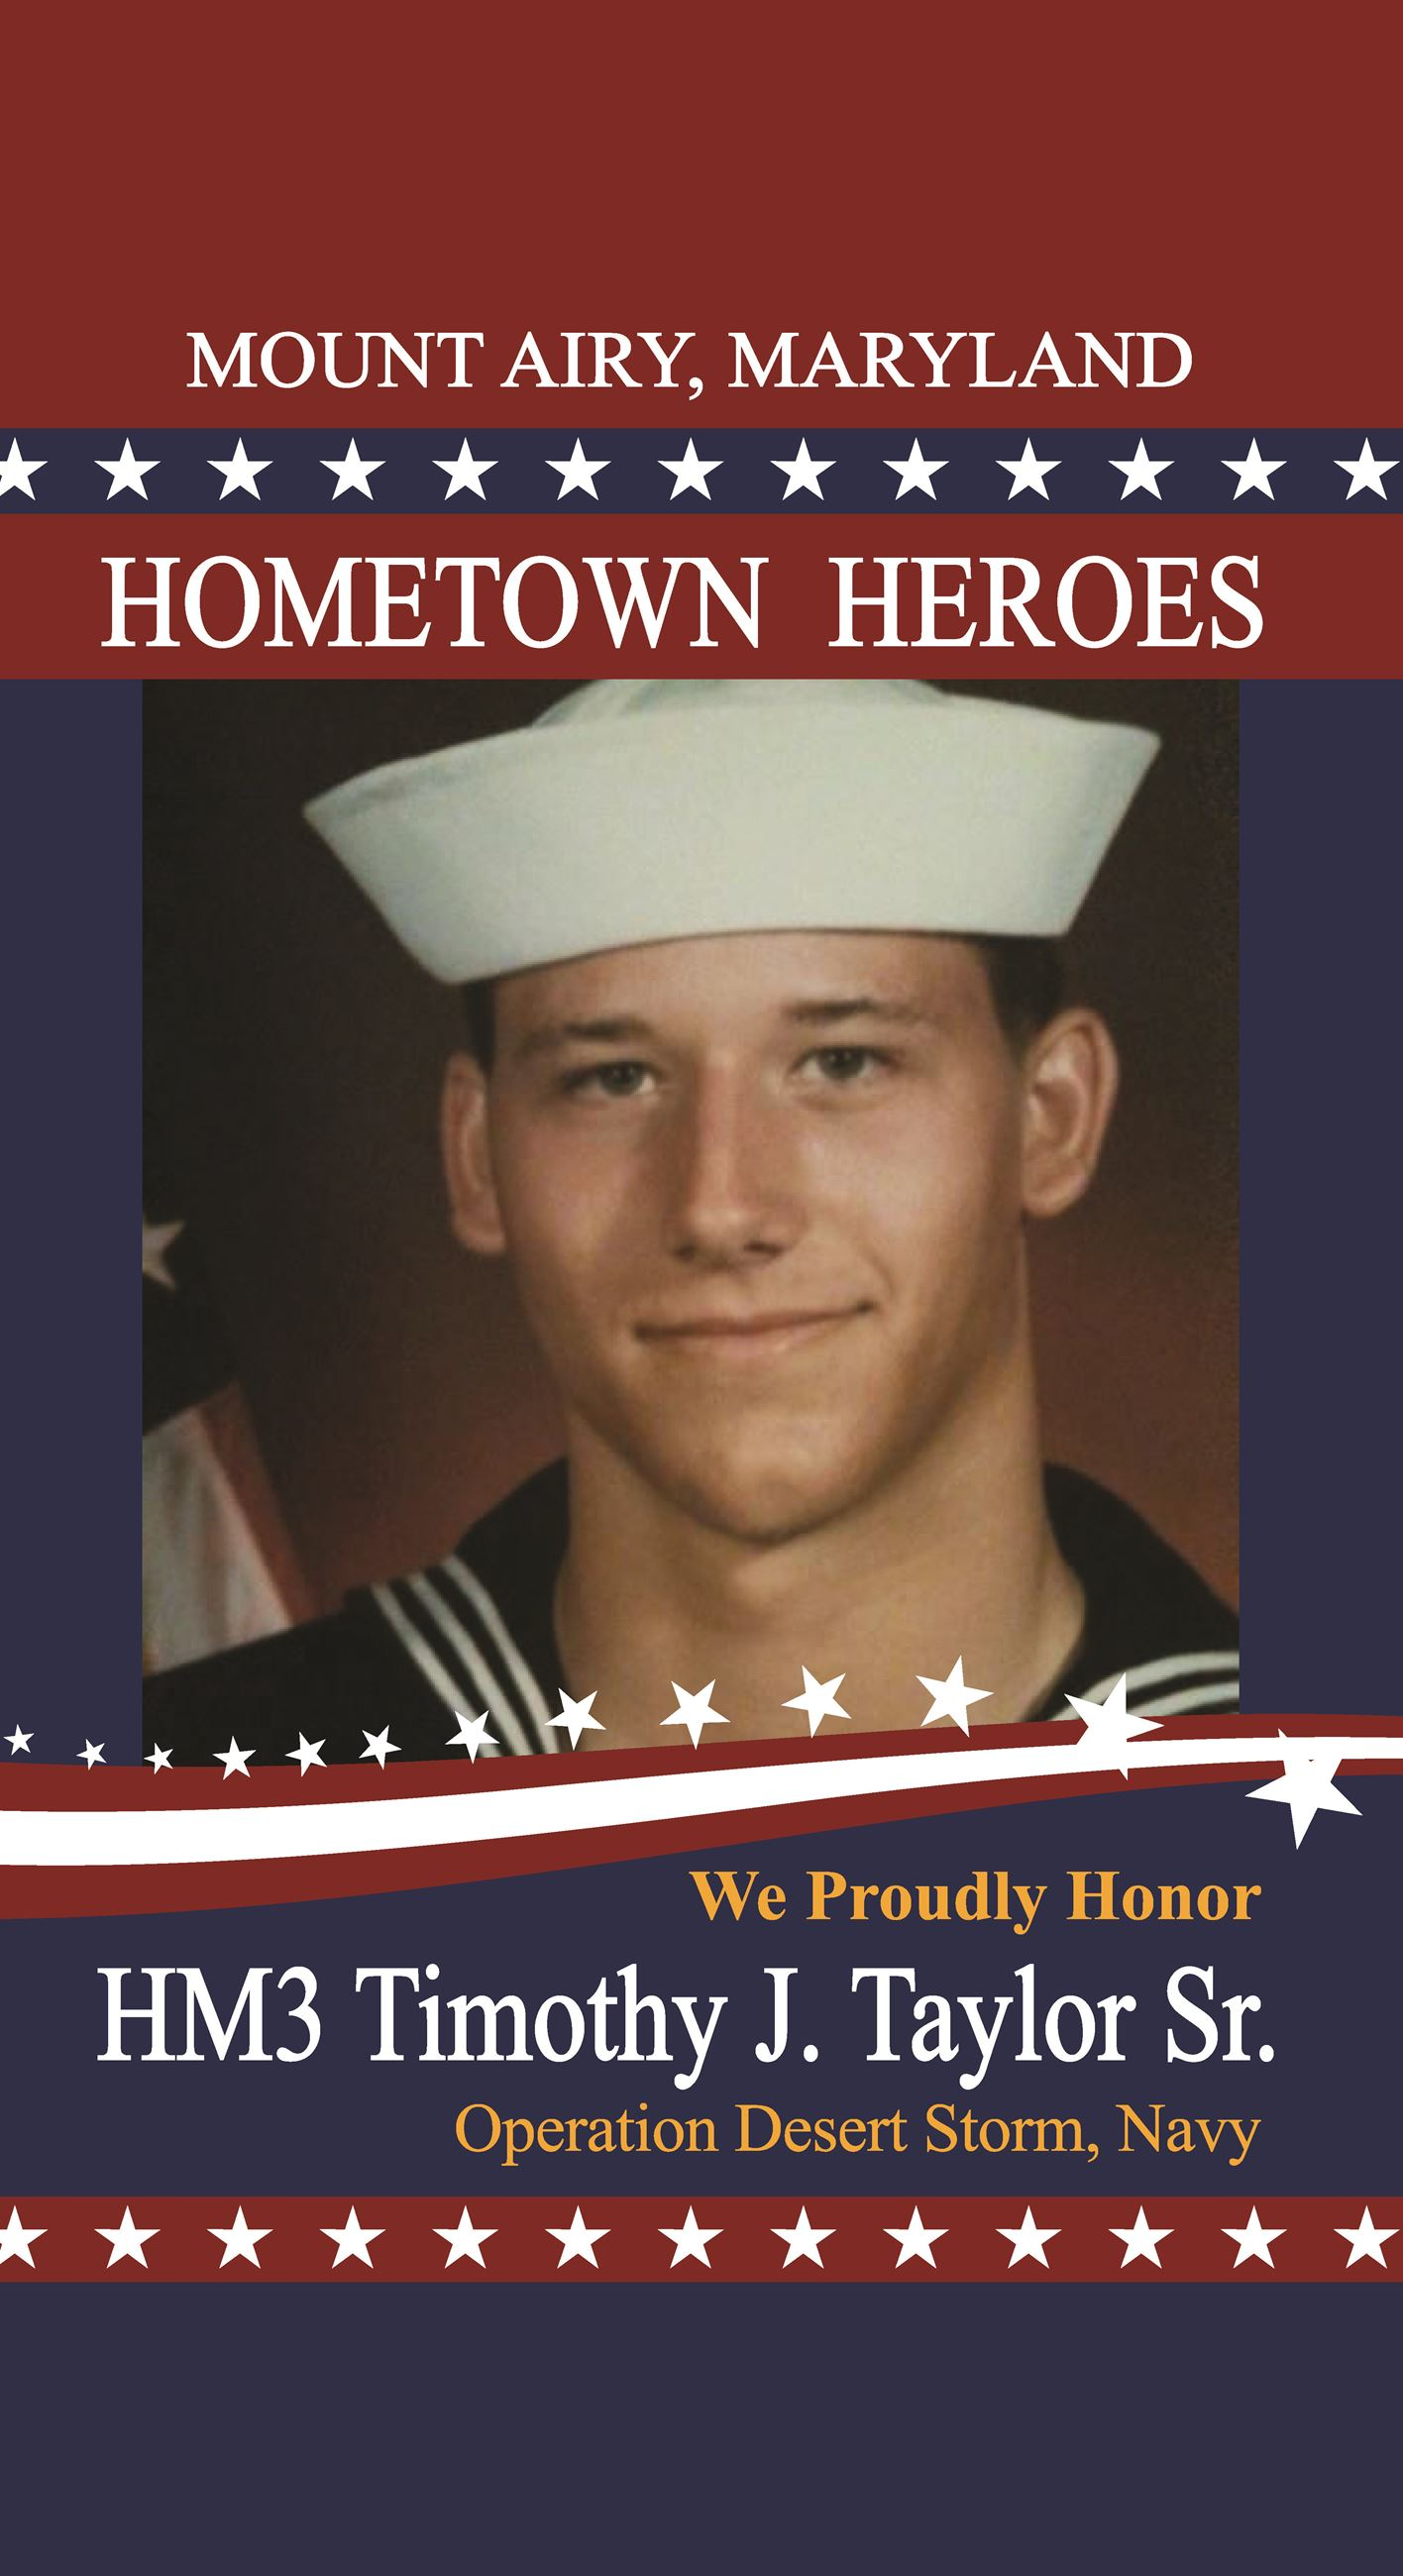 TimothyJTaylorSr_MtAiryHeroes-Flag-24x44-Proof001